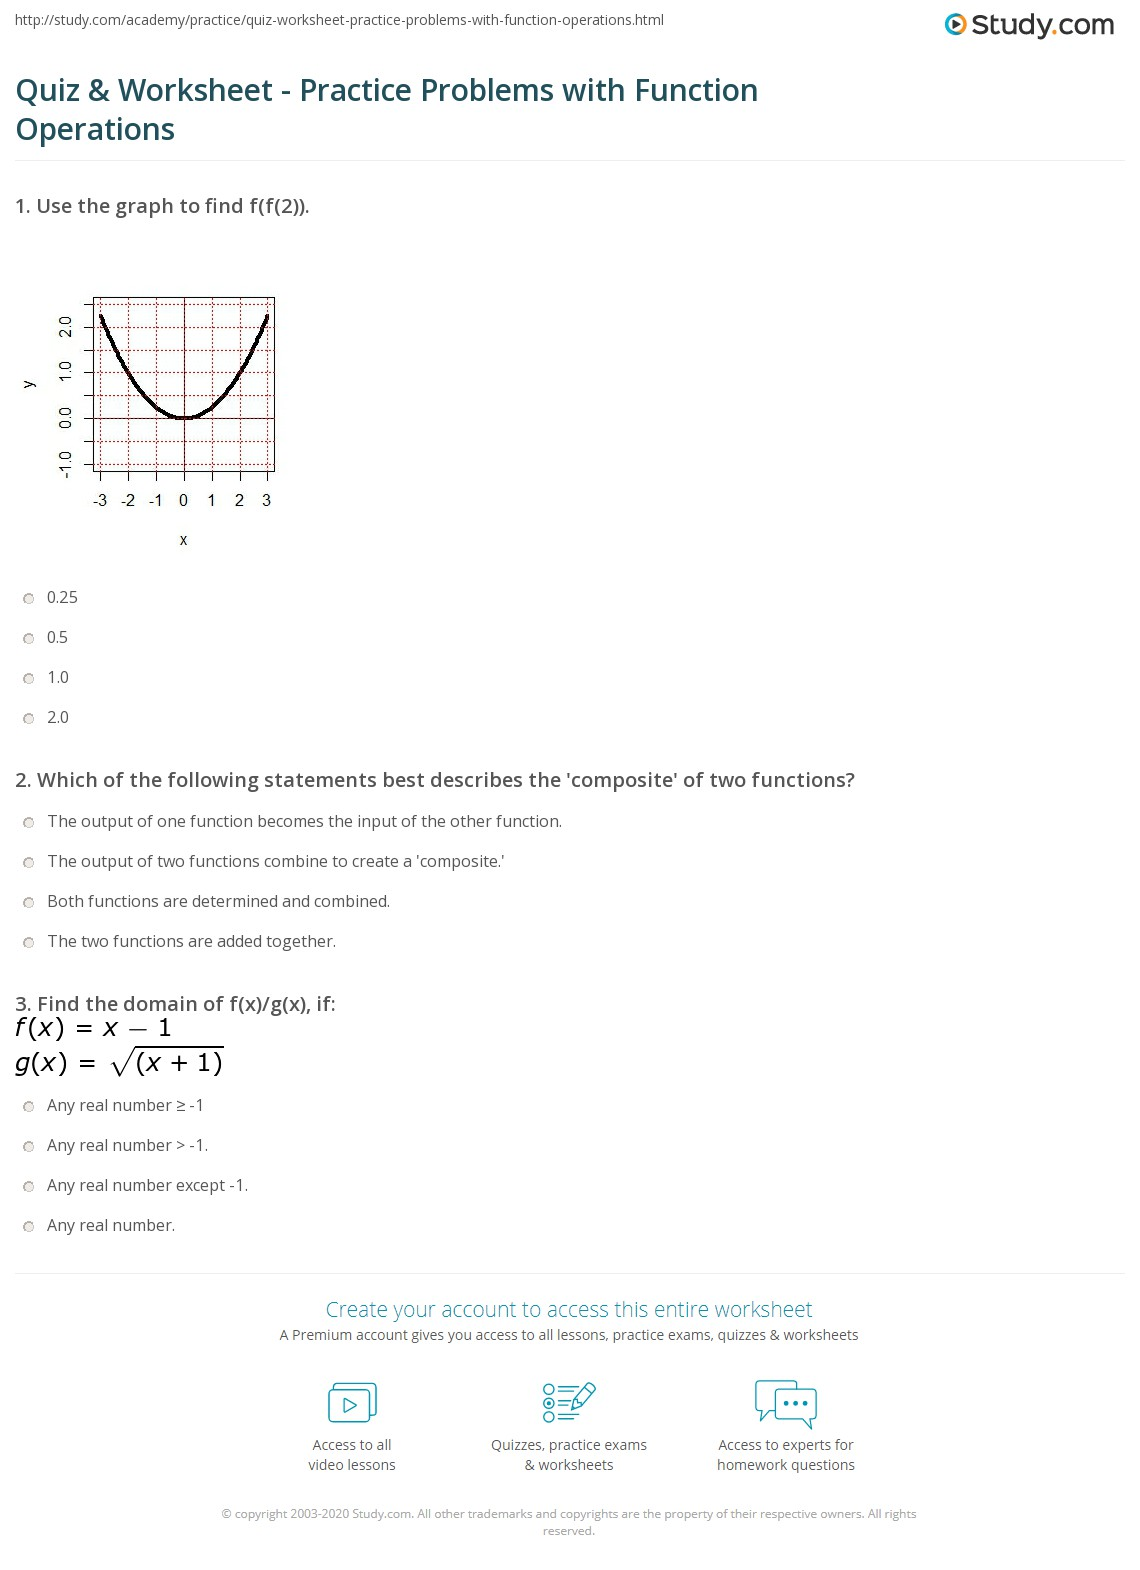 hight resolution of Quiz \u0026 Worksheet - Practice Problems with Function Operations   Study.com